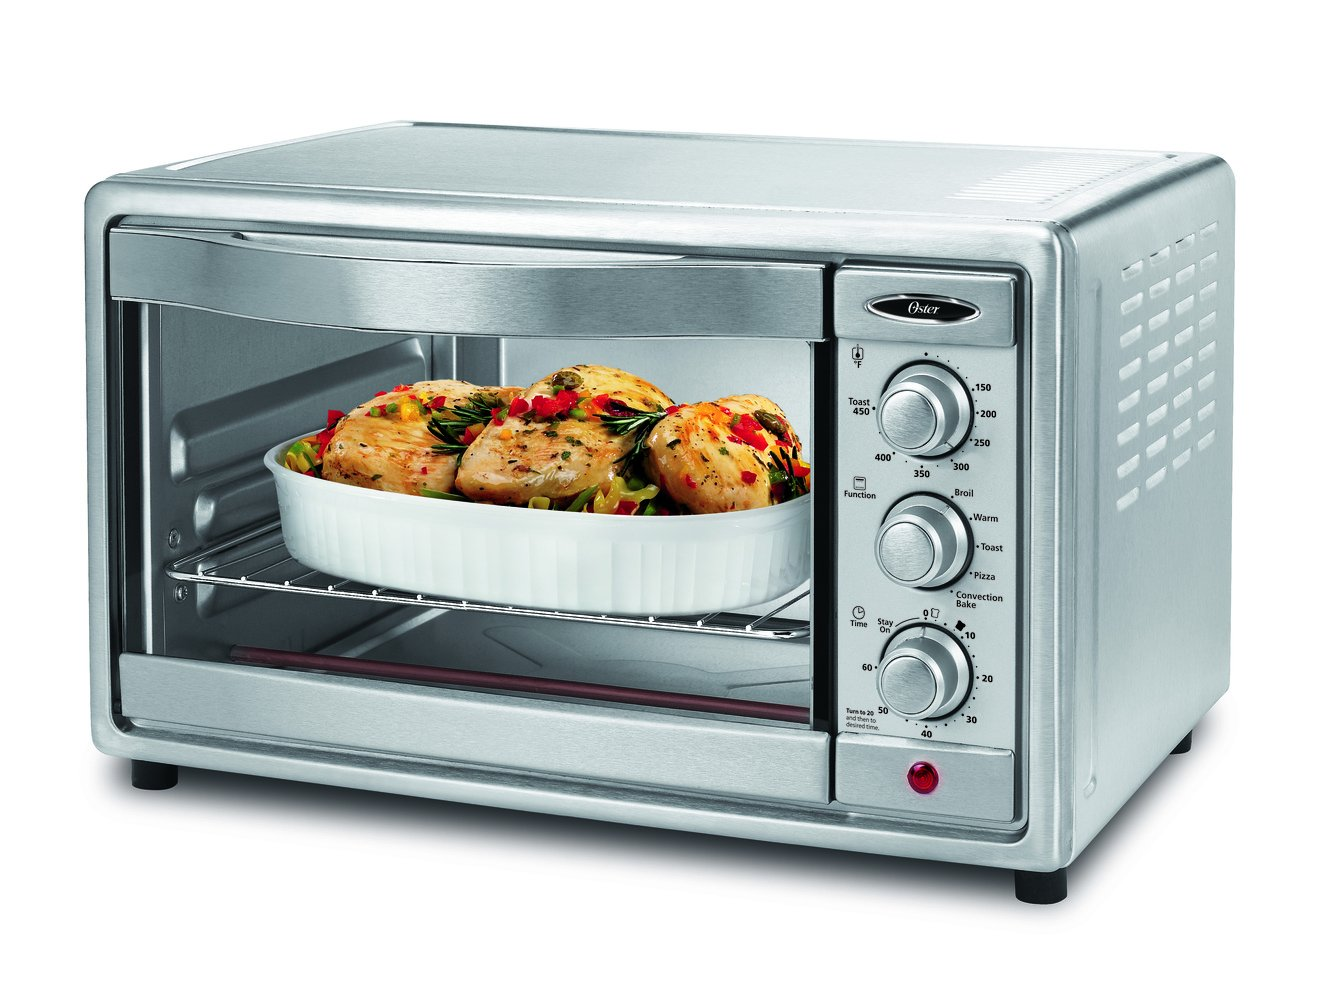 Oster Convection Toaster Stainless TSSTTVRB04